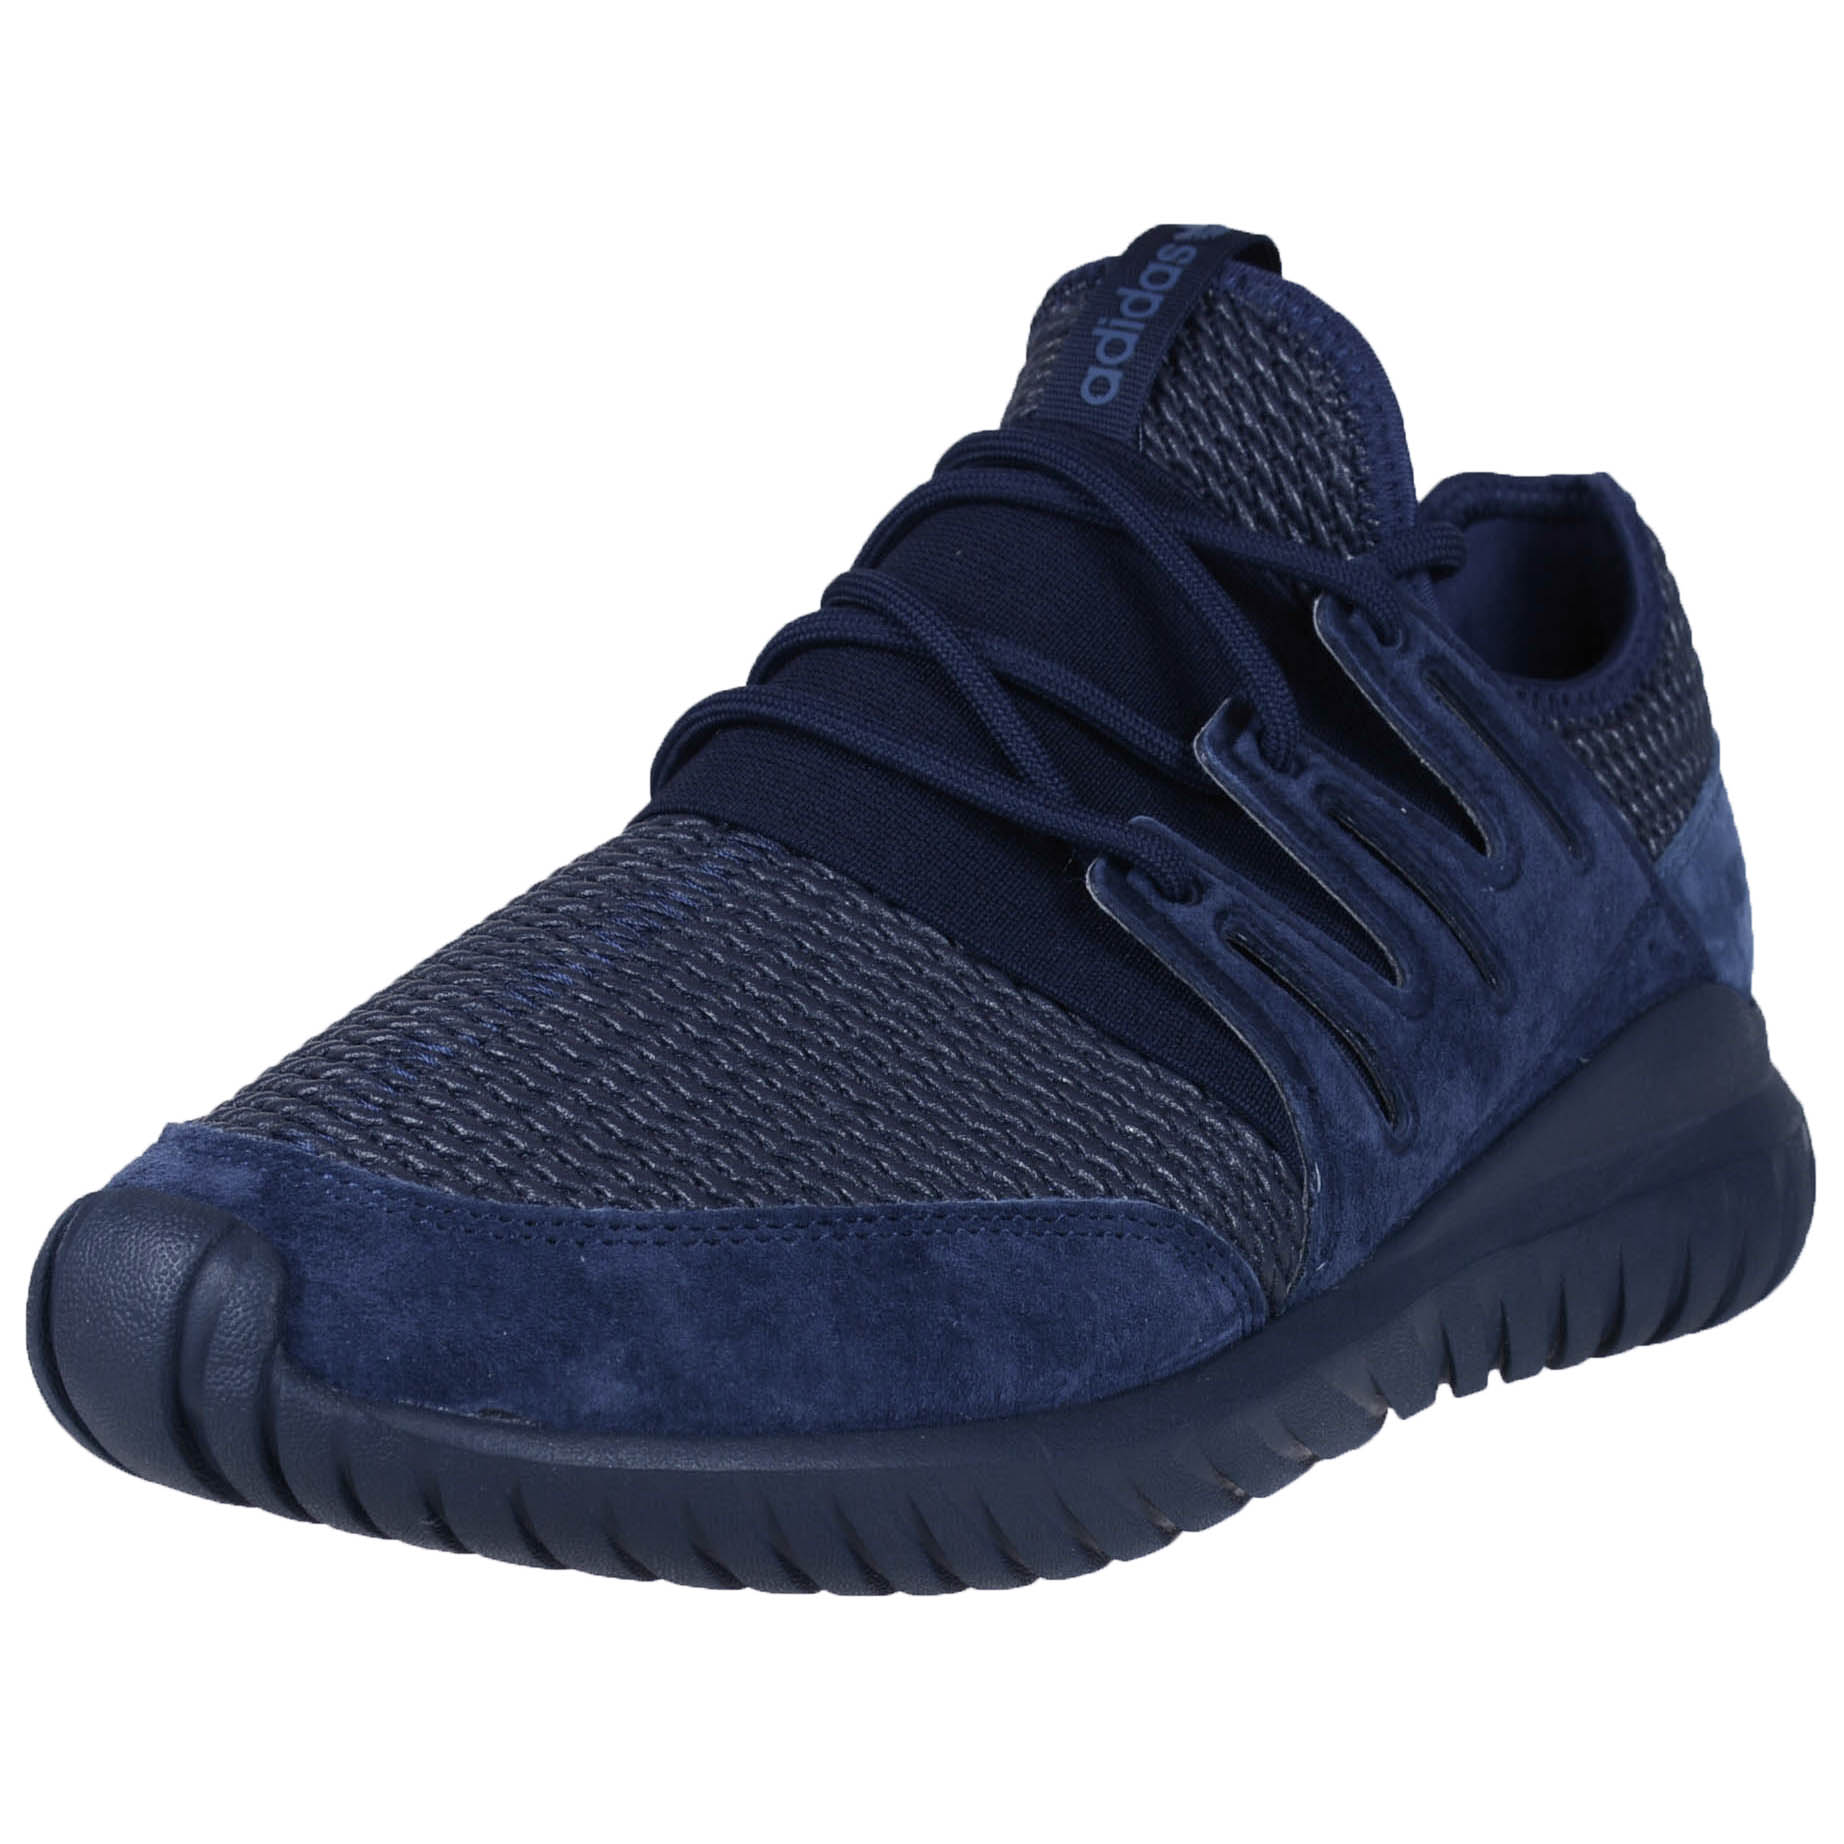 46c1f5ae4aee Details about ADIDAS TUBULAR RADIAL COLLEGIATE NAVY BLUE S76722 ORIGINALS  MENS RUNNING FASHION